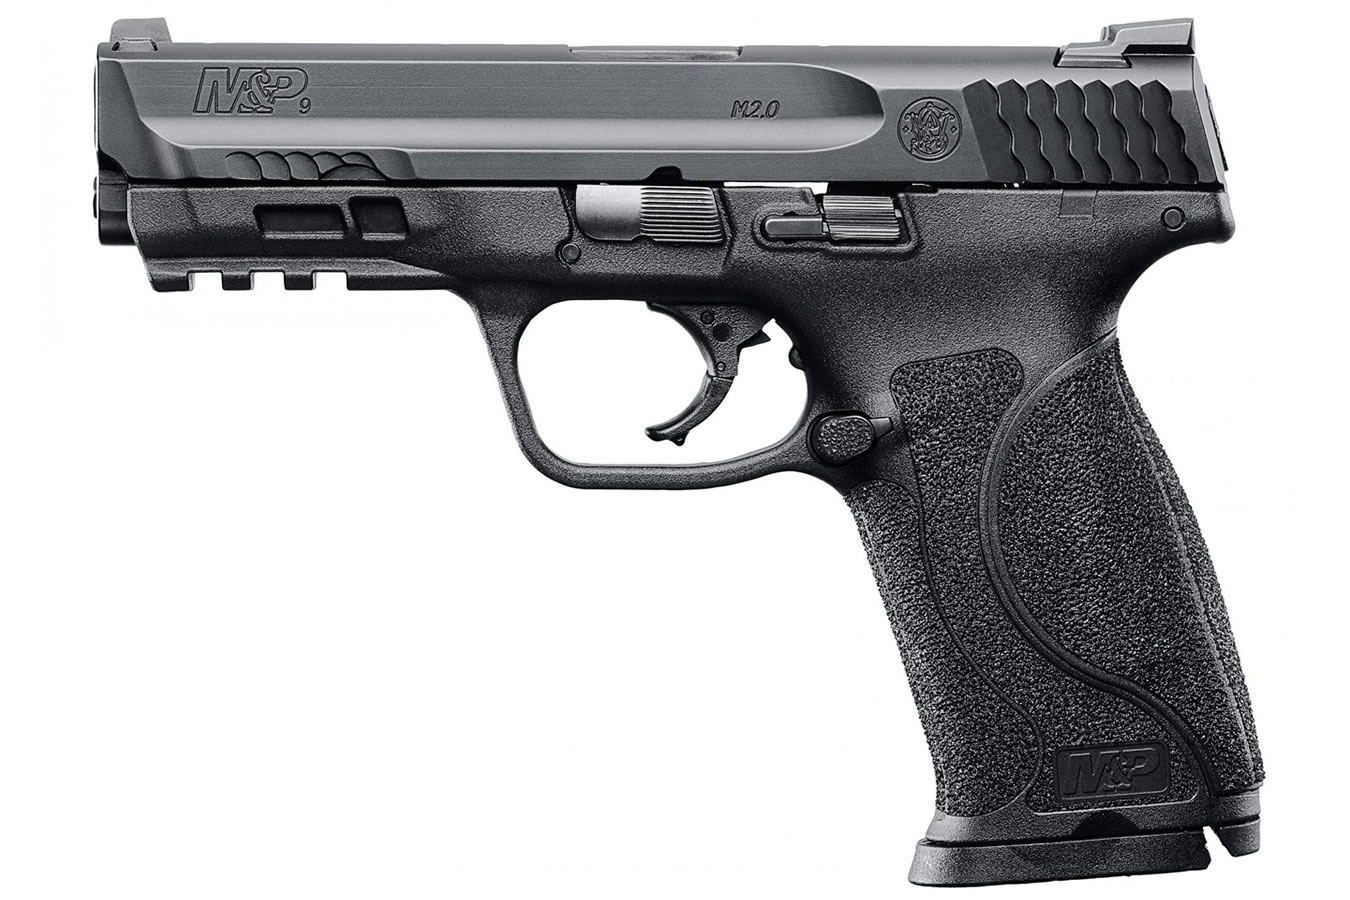 No. 5 Best Selling: SMITH AND WESSON MP9 M2.0 9MM NO THUMB SAFETY